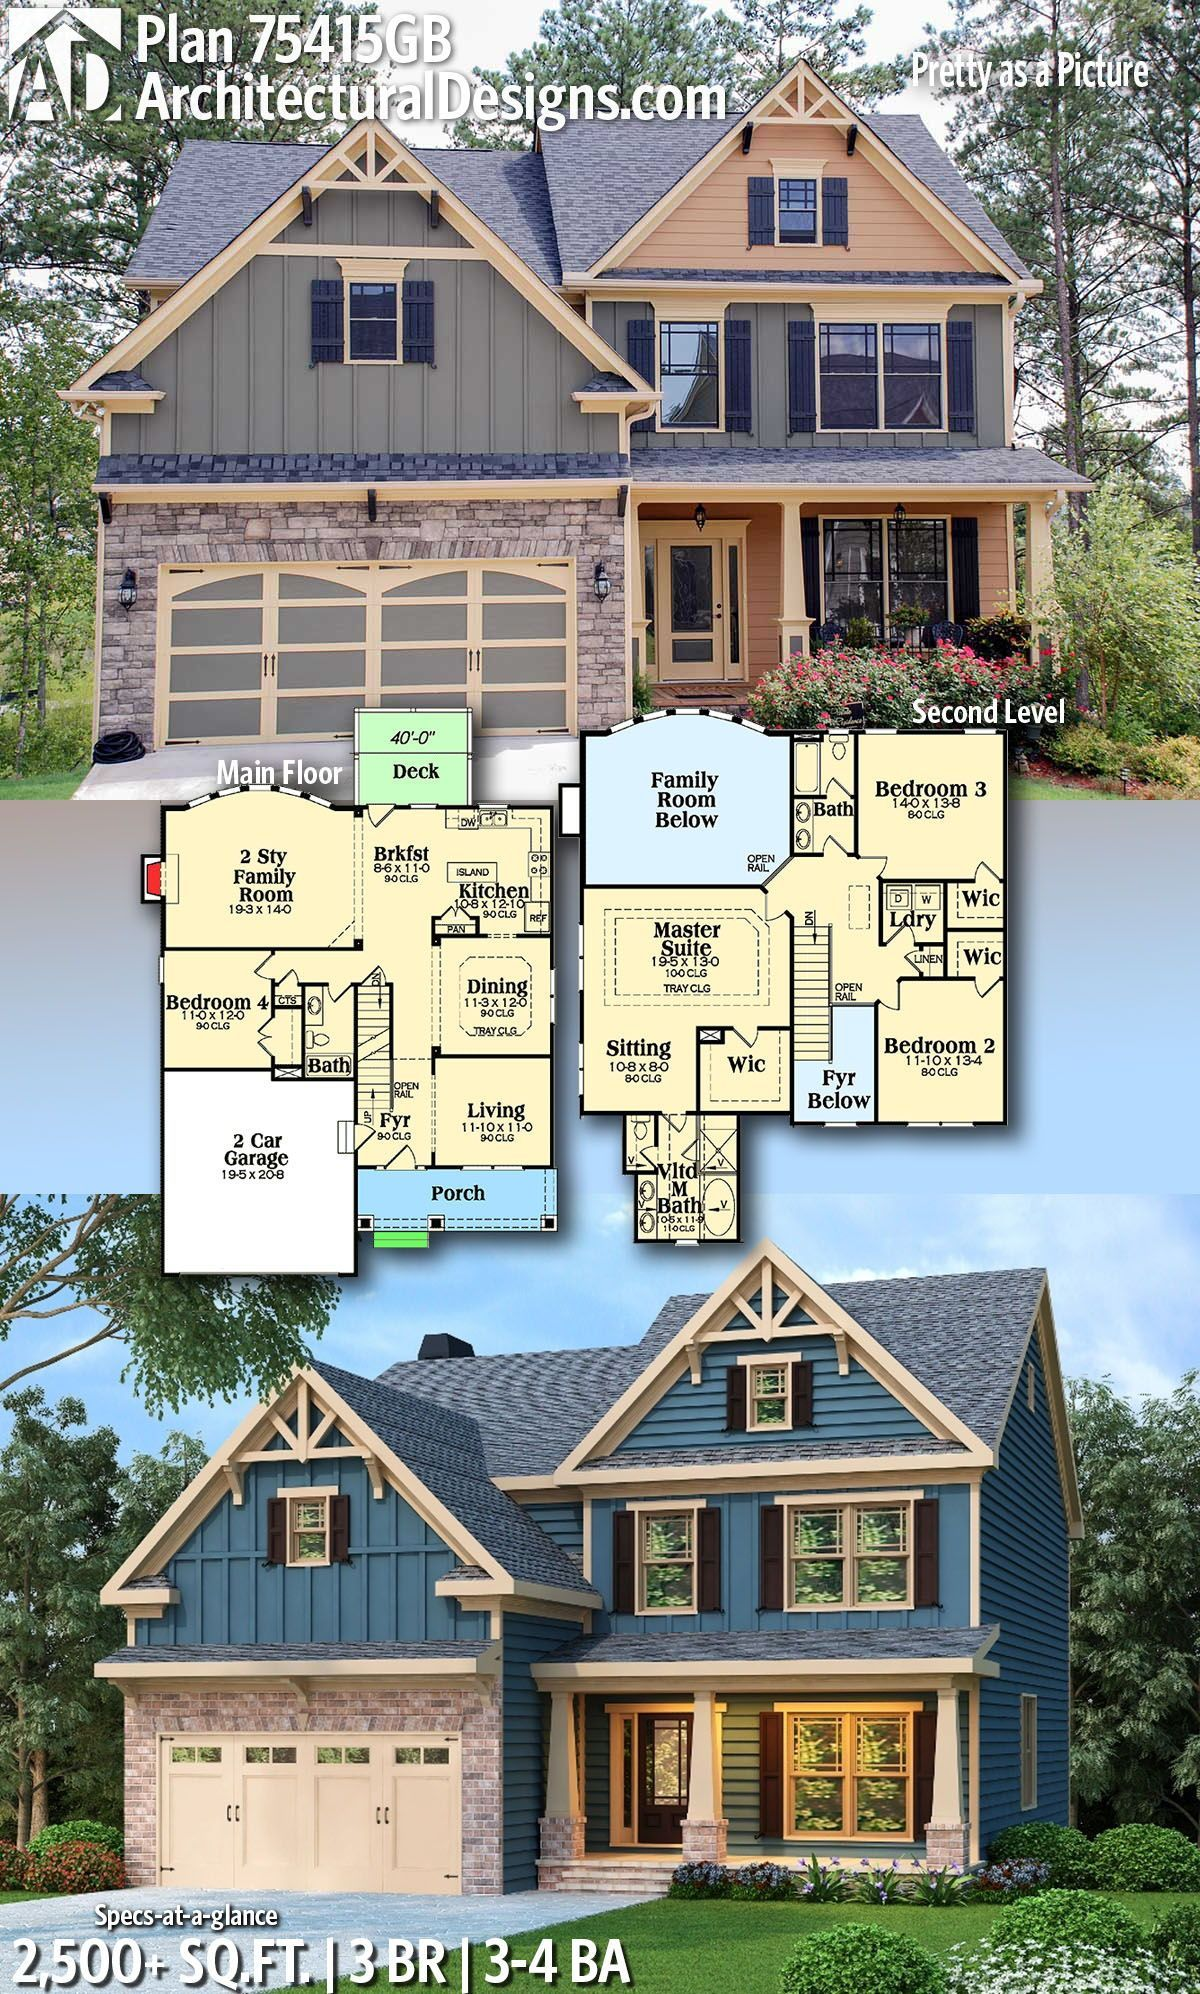 Home Design Drawings In 2020 House Plans Sims House Plans House Floor Plans